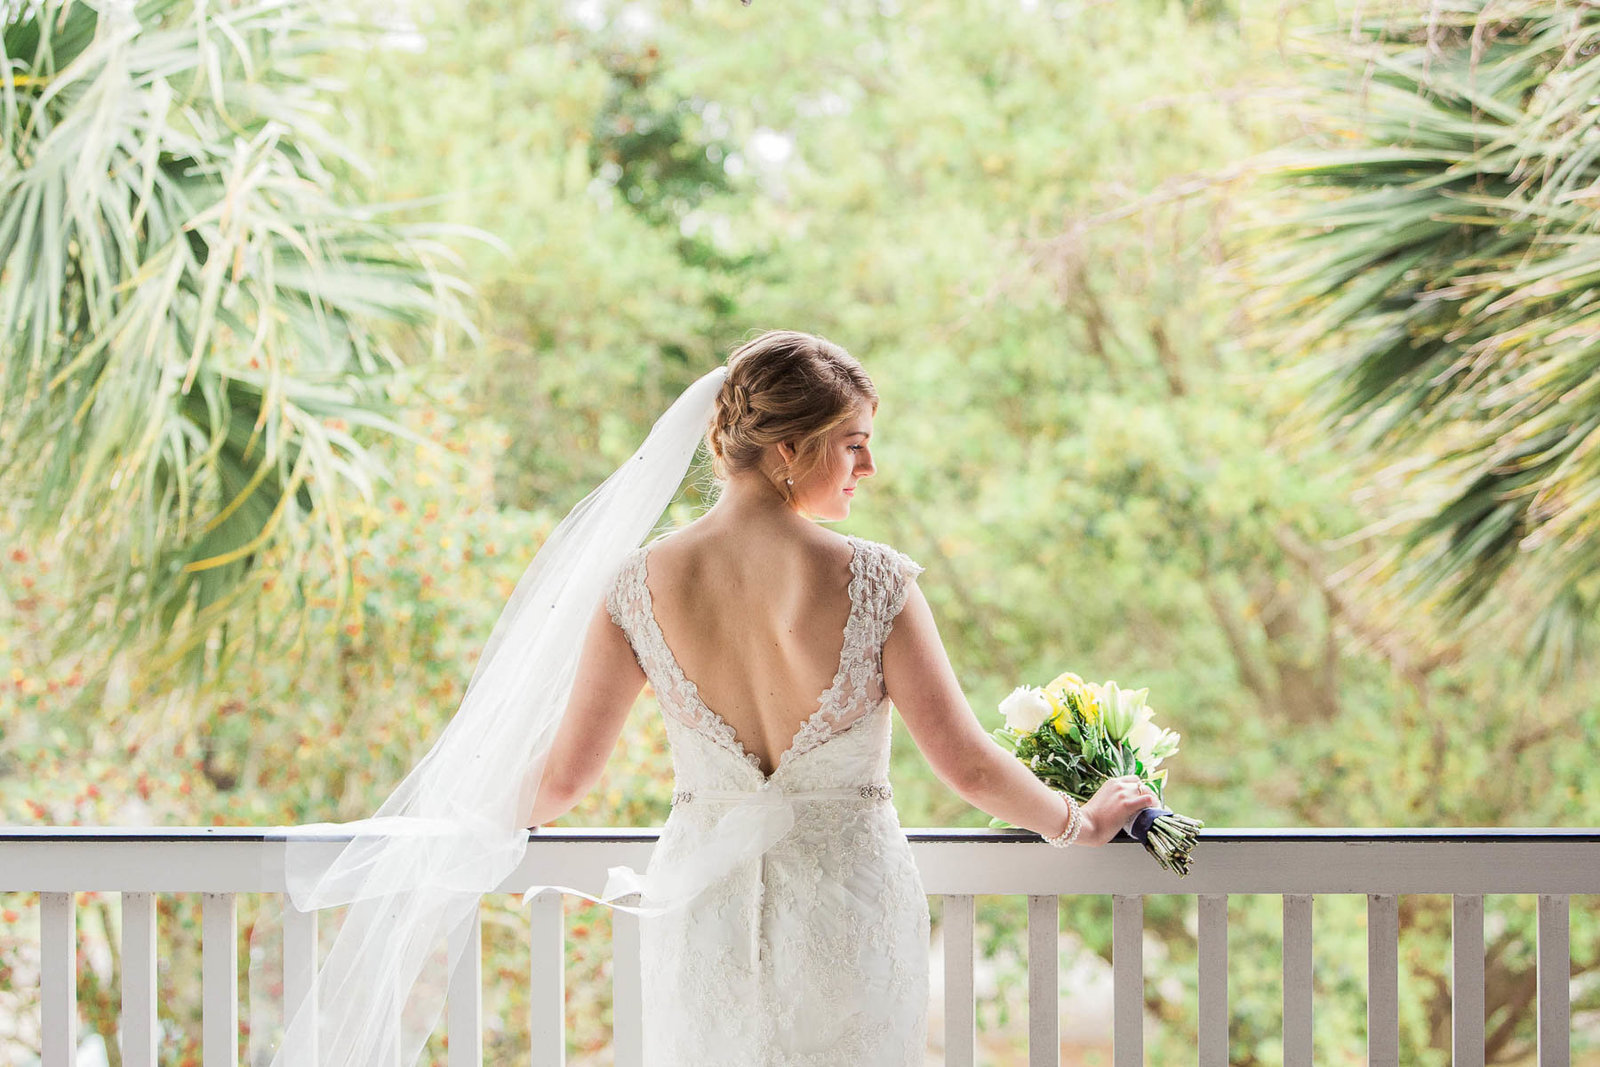 Bride leans on railing with veil blowing, Alhambra Hall, Charleston, South Carolina